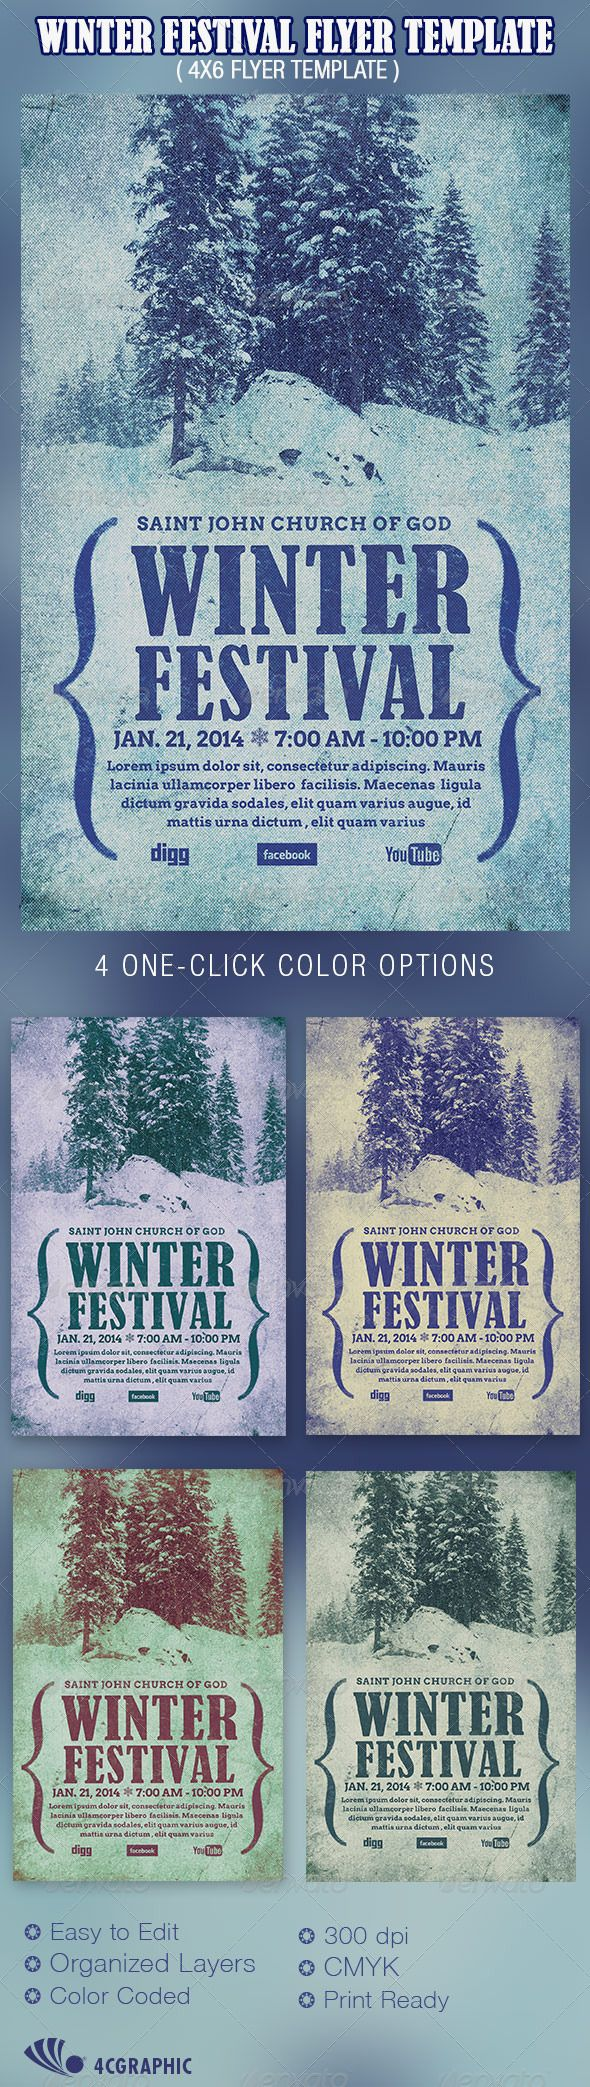 ideas about event flyer templates event winter festival flyer template